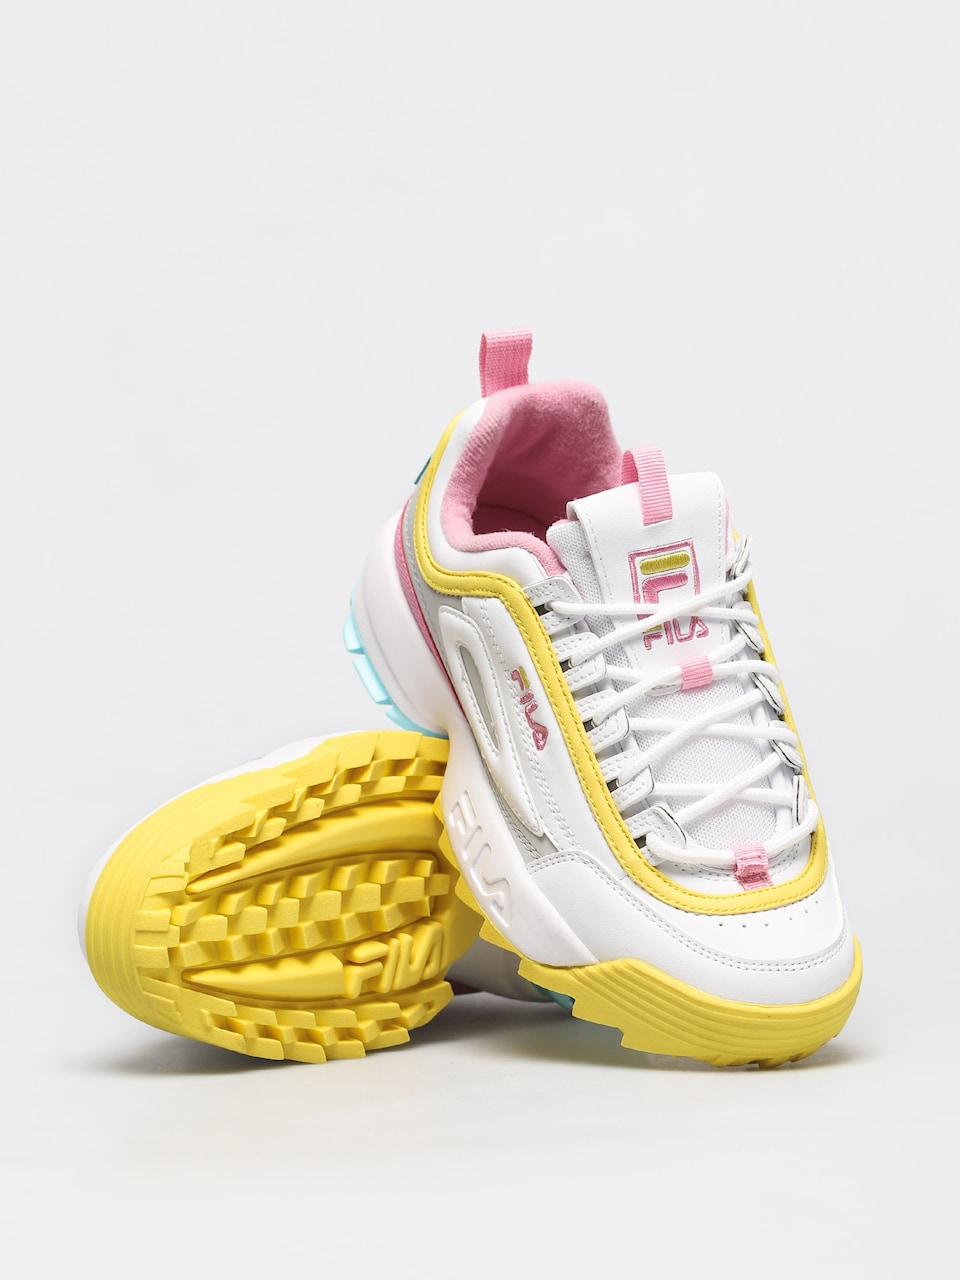 Fila Disruptor CB Low WMN White Limelight